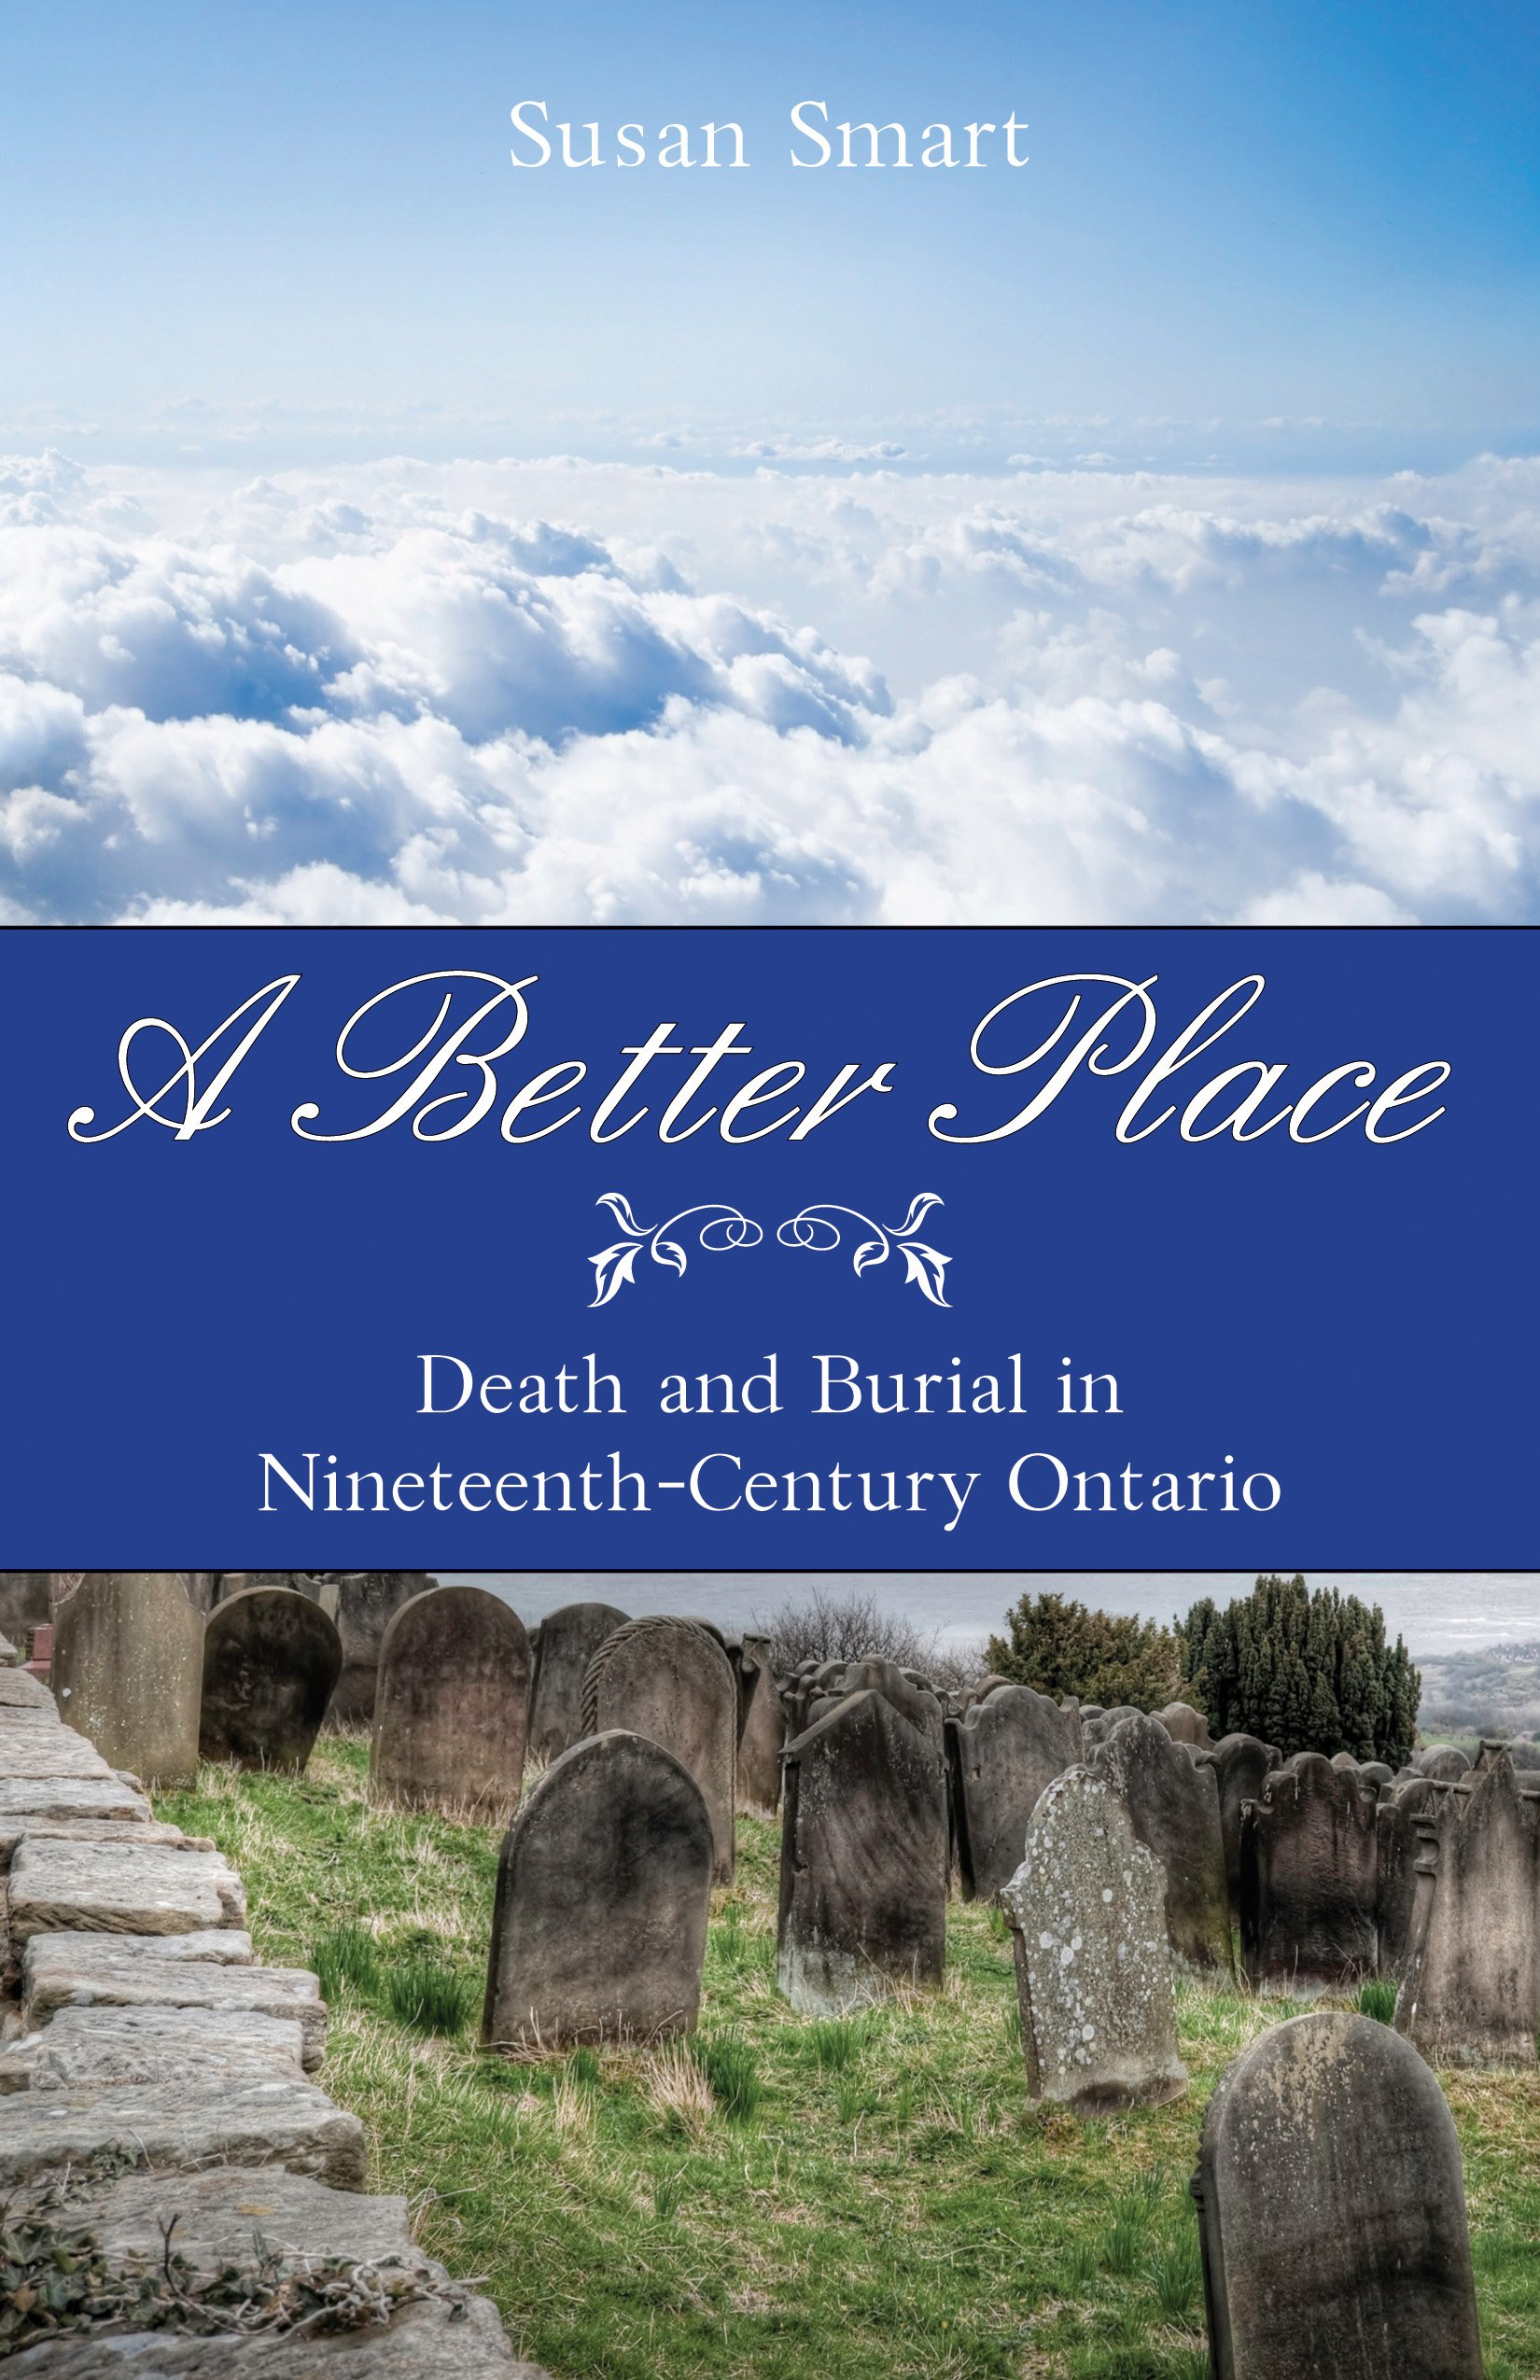 Death and Burial in Nineteenth-Century Ontario A Better Place